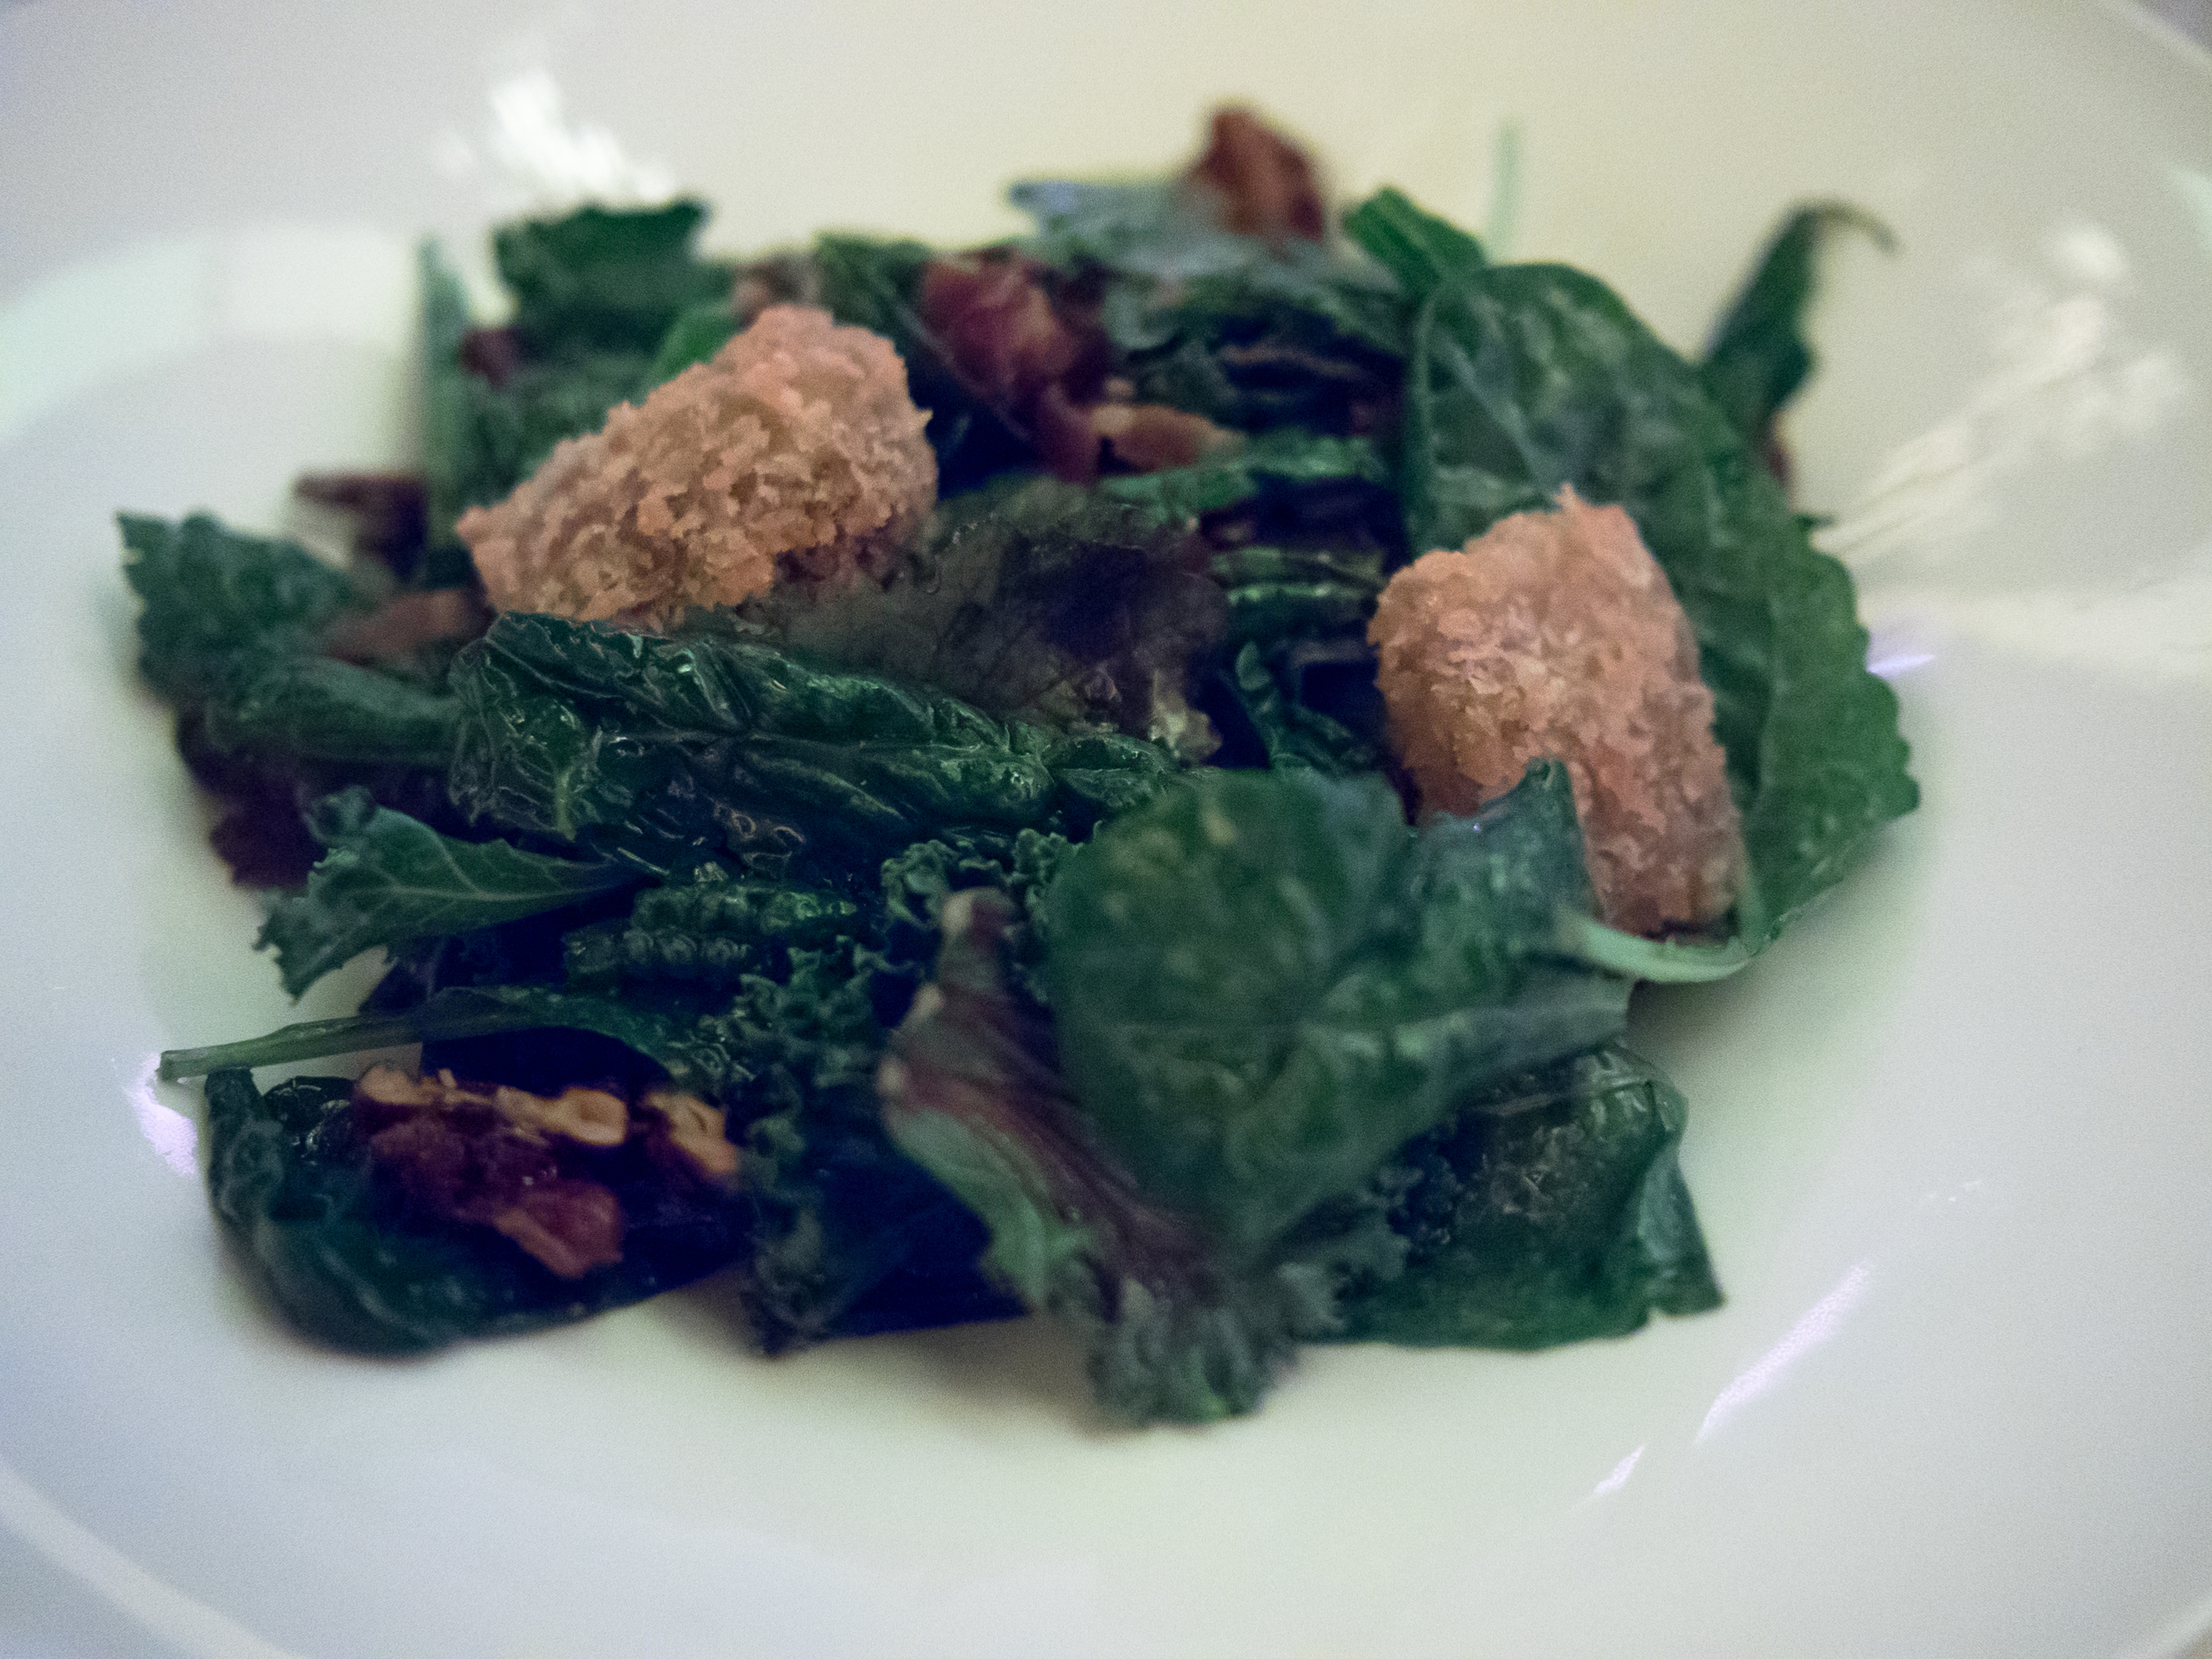 warm kale salad  with smoked bacon, dates, crips brie, walnuts.